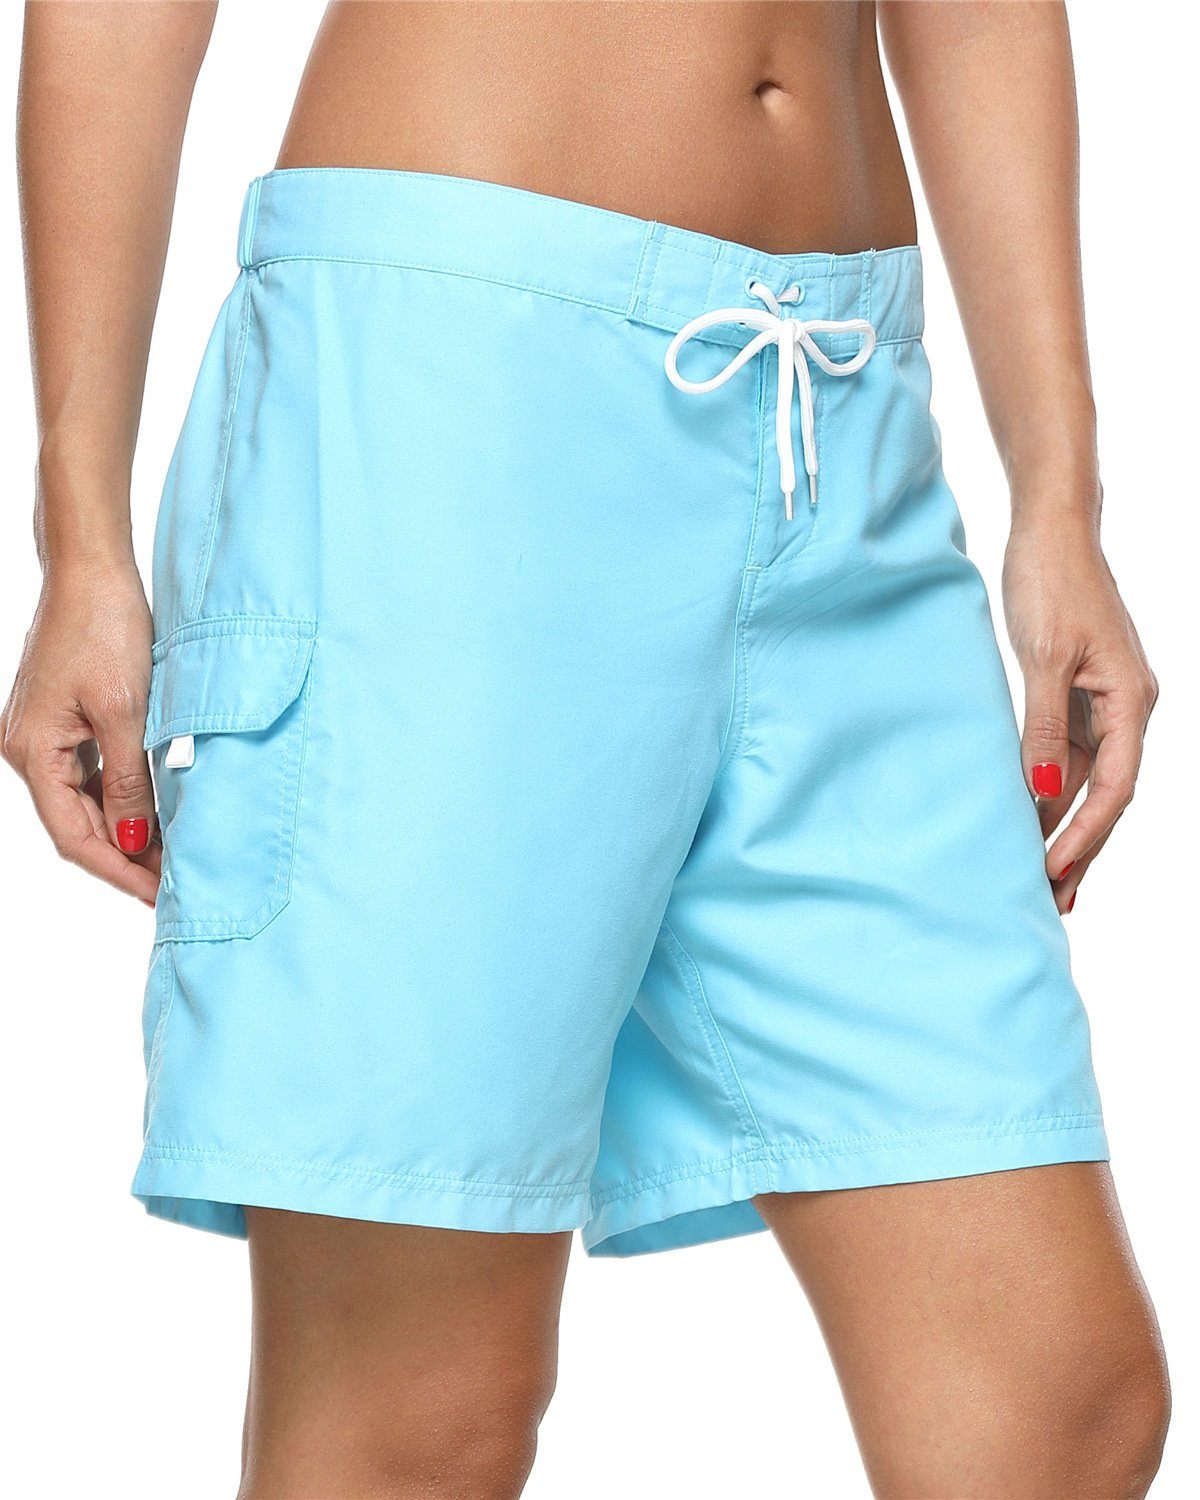 ALove Women's Loose Fit Swim Shorts Quick Drying Boardshorts Swimsuits Bottom Blue Medium